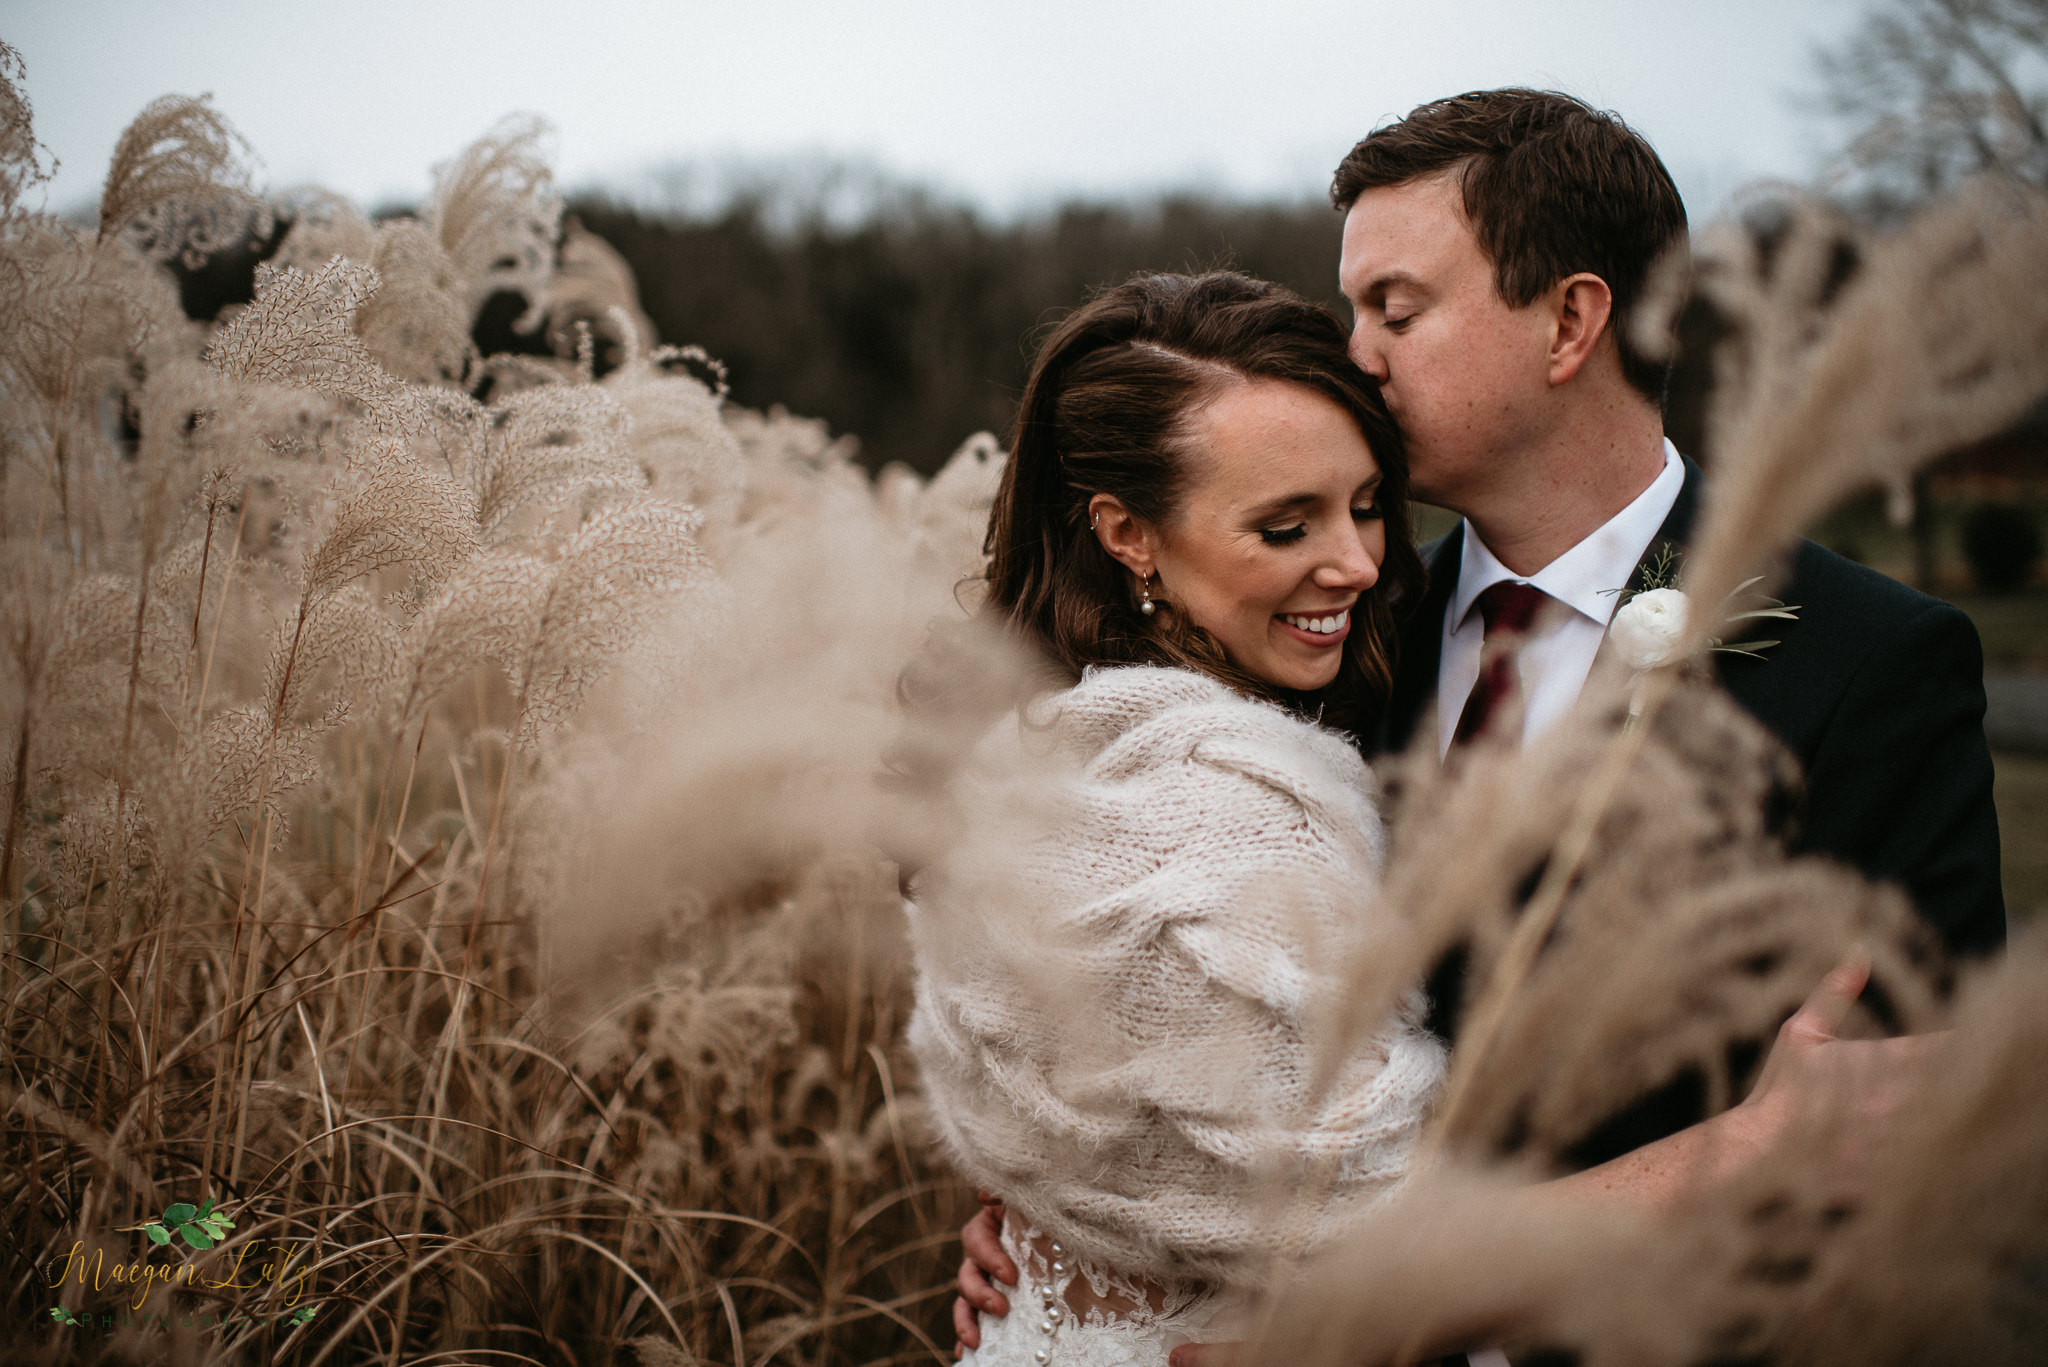 NEPA and Central PA wedding photographer at Farmstead Golf and Country Club Lafayette Township, NJ 07848